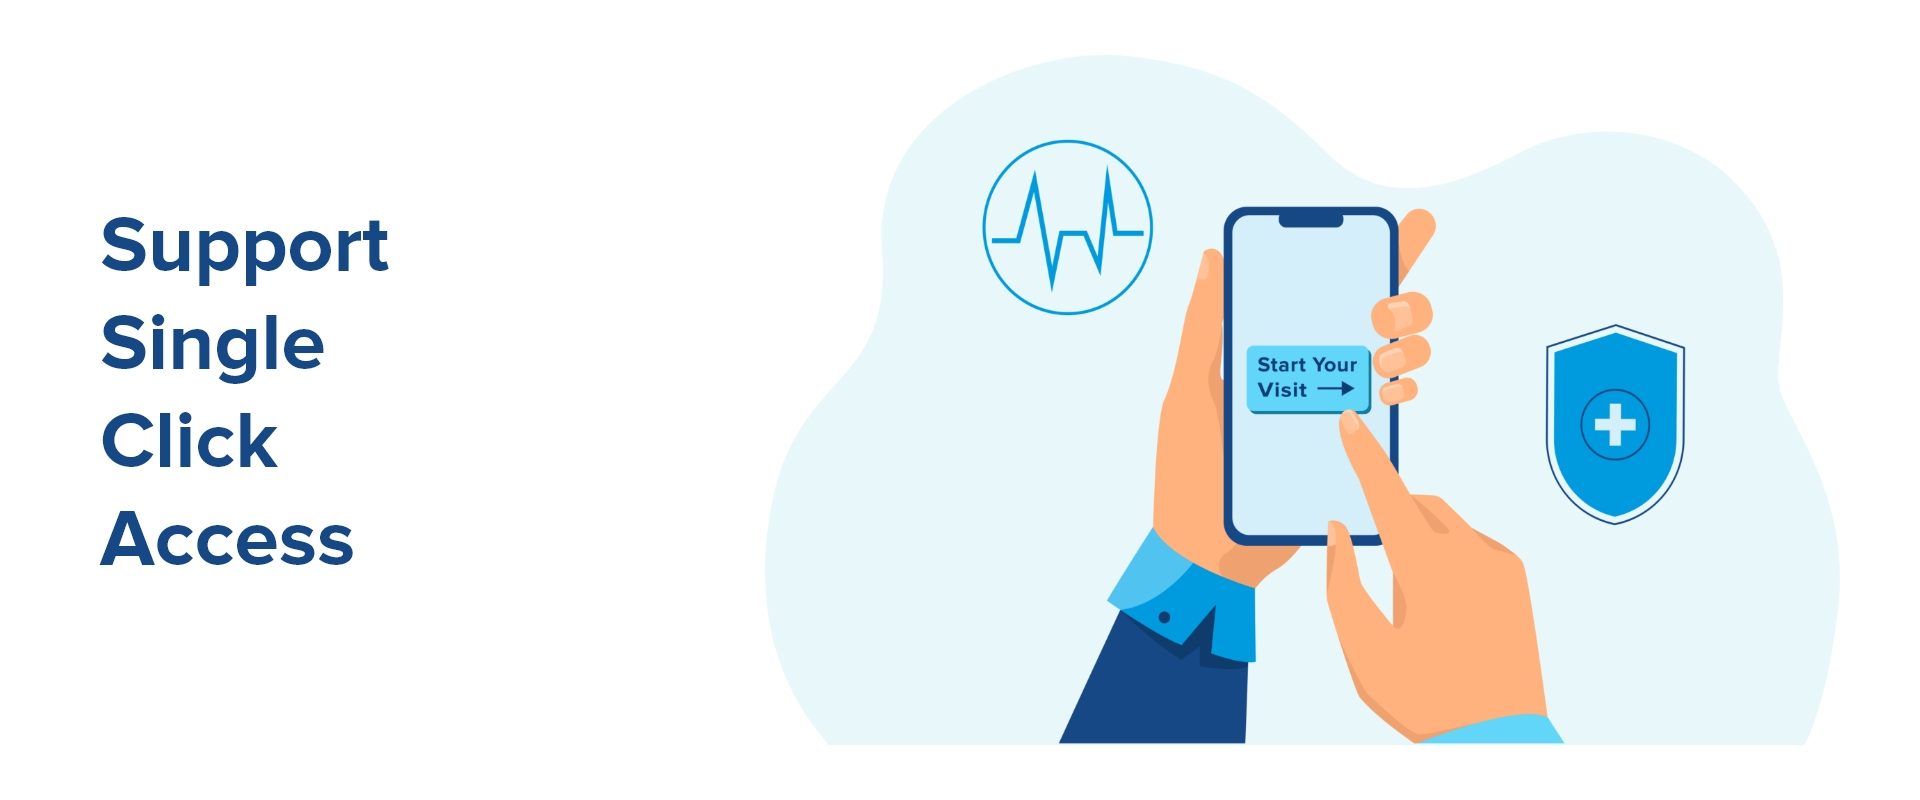 telehealth solution showing single click sign on